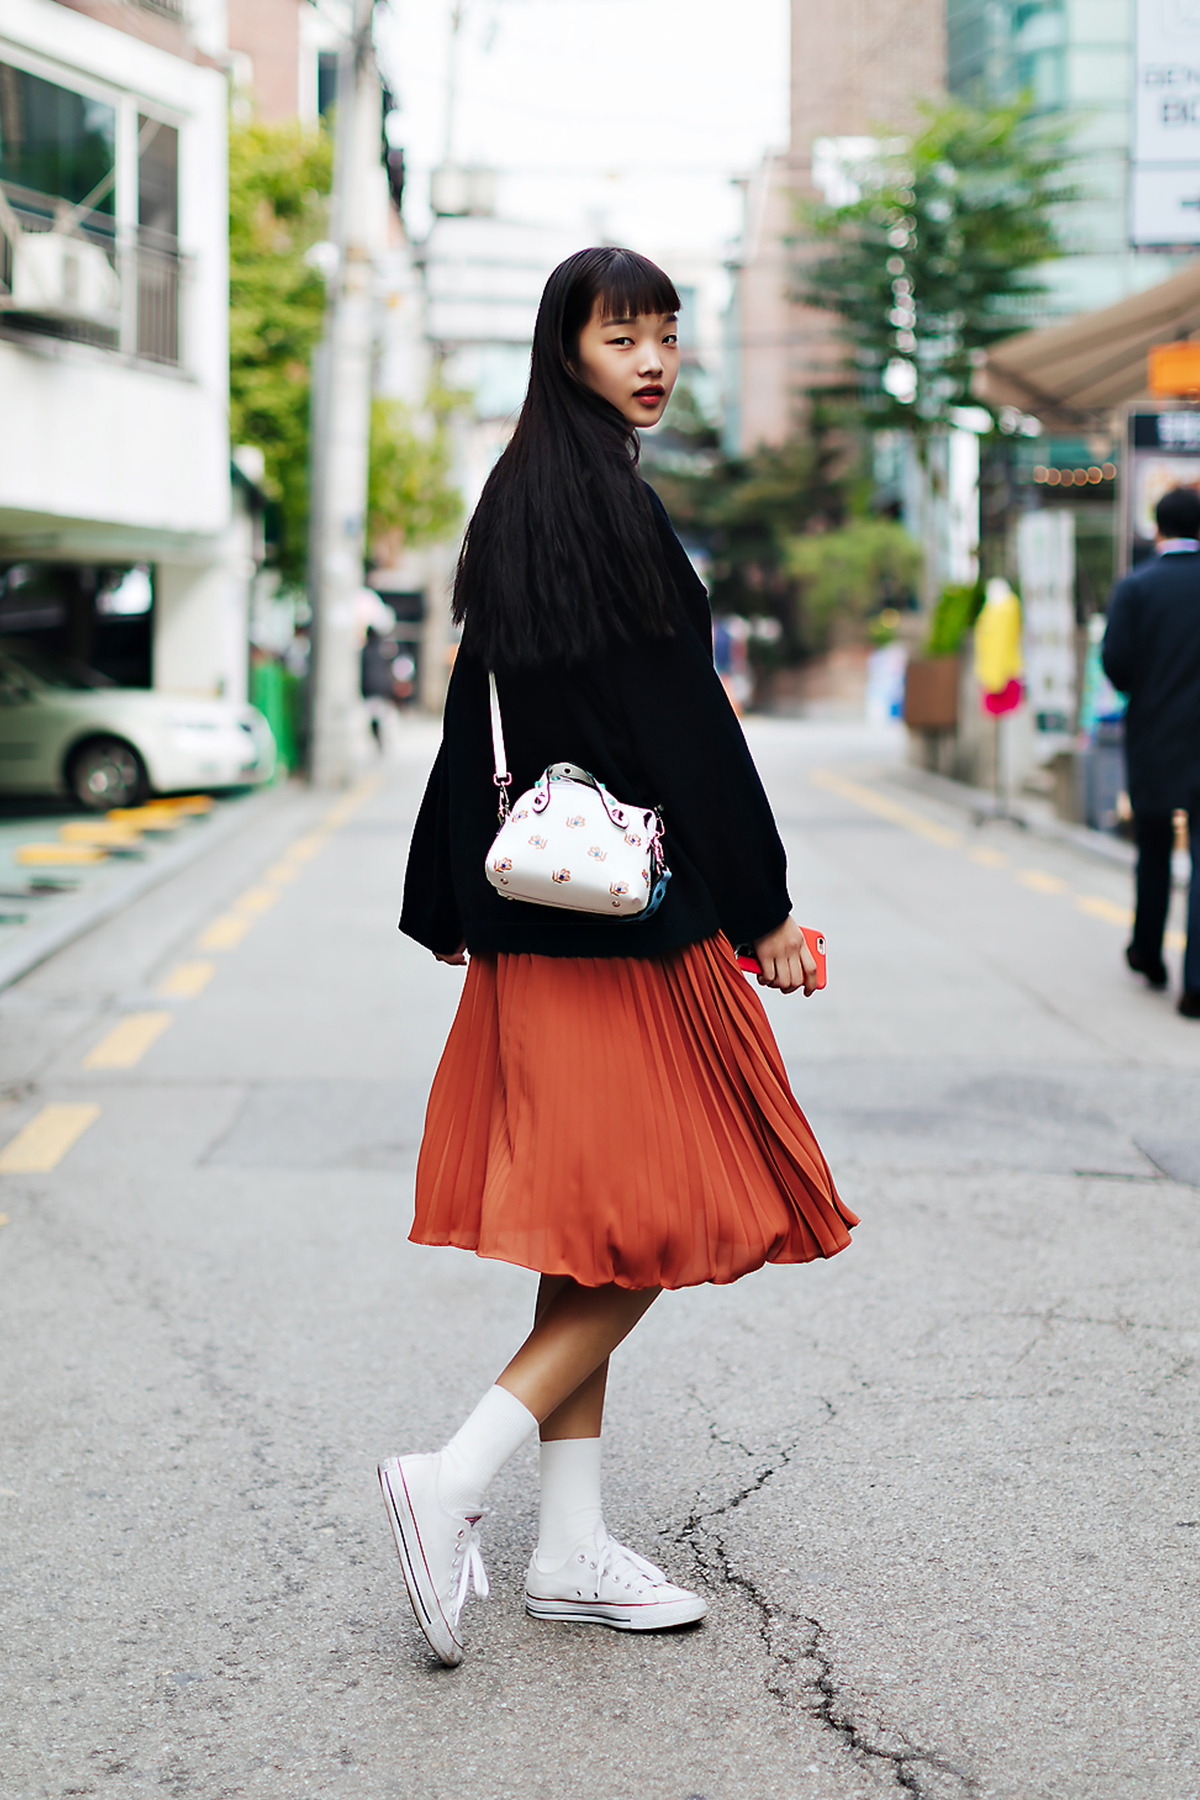 Women fall street style fourth week of october 2018 in seoul 5